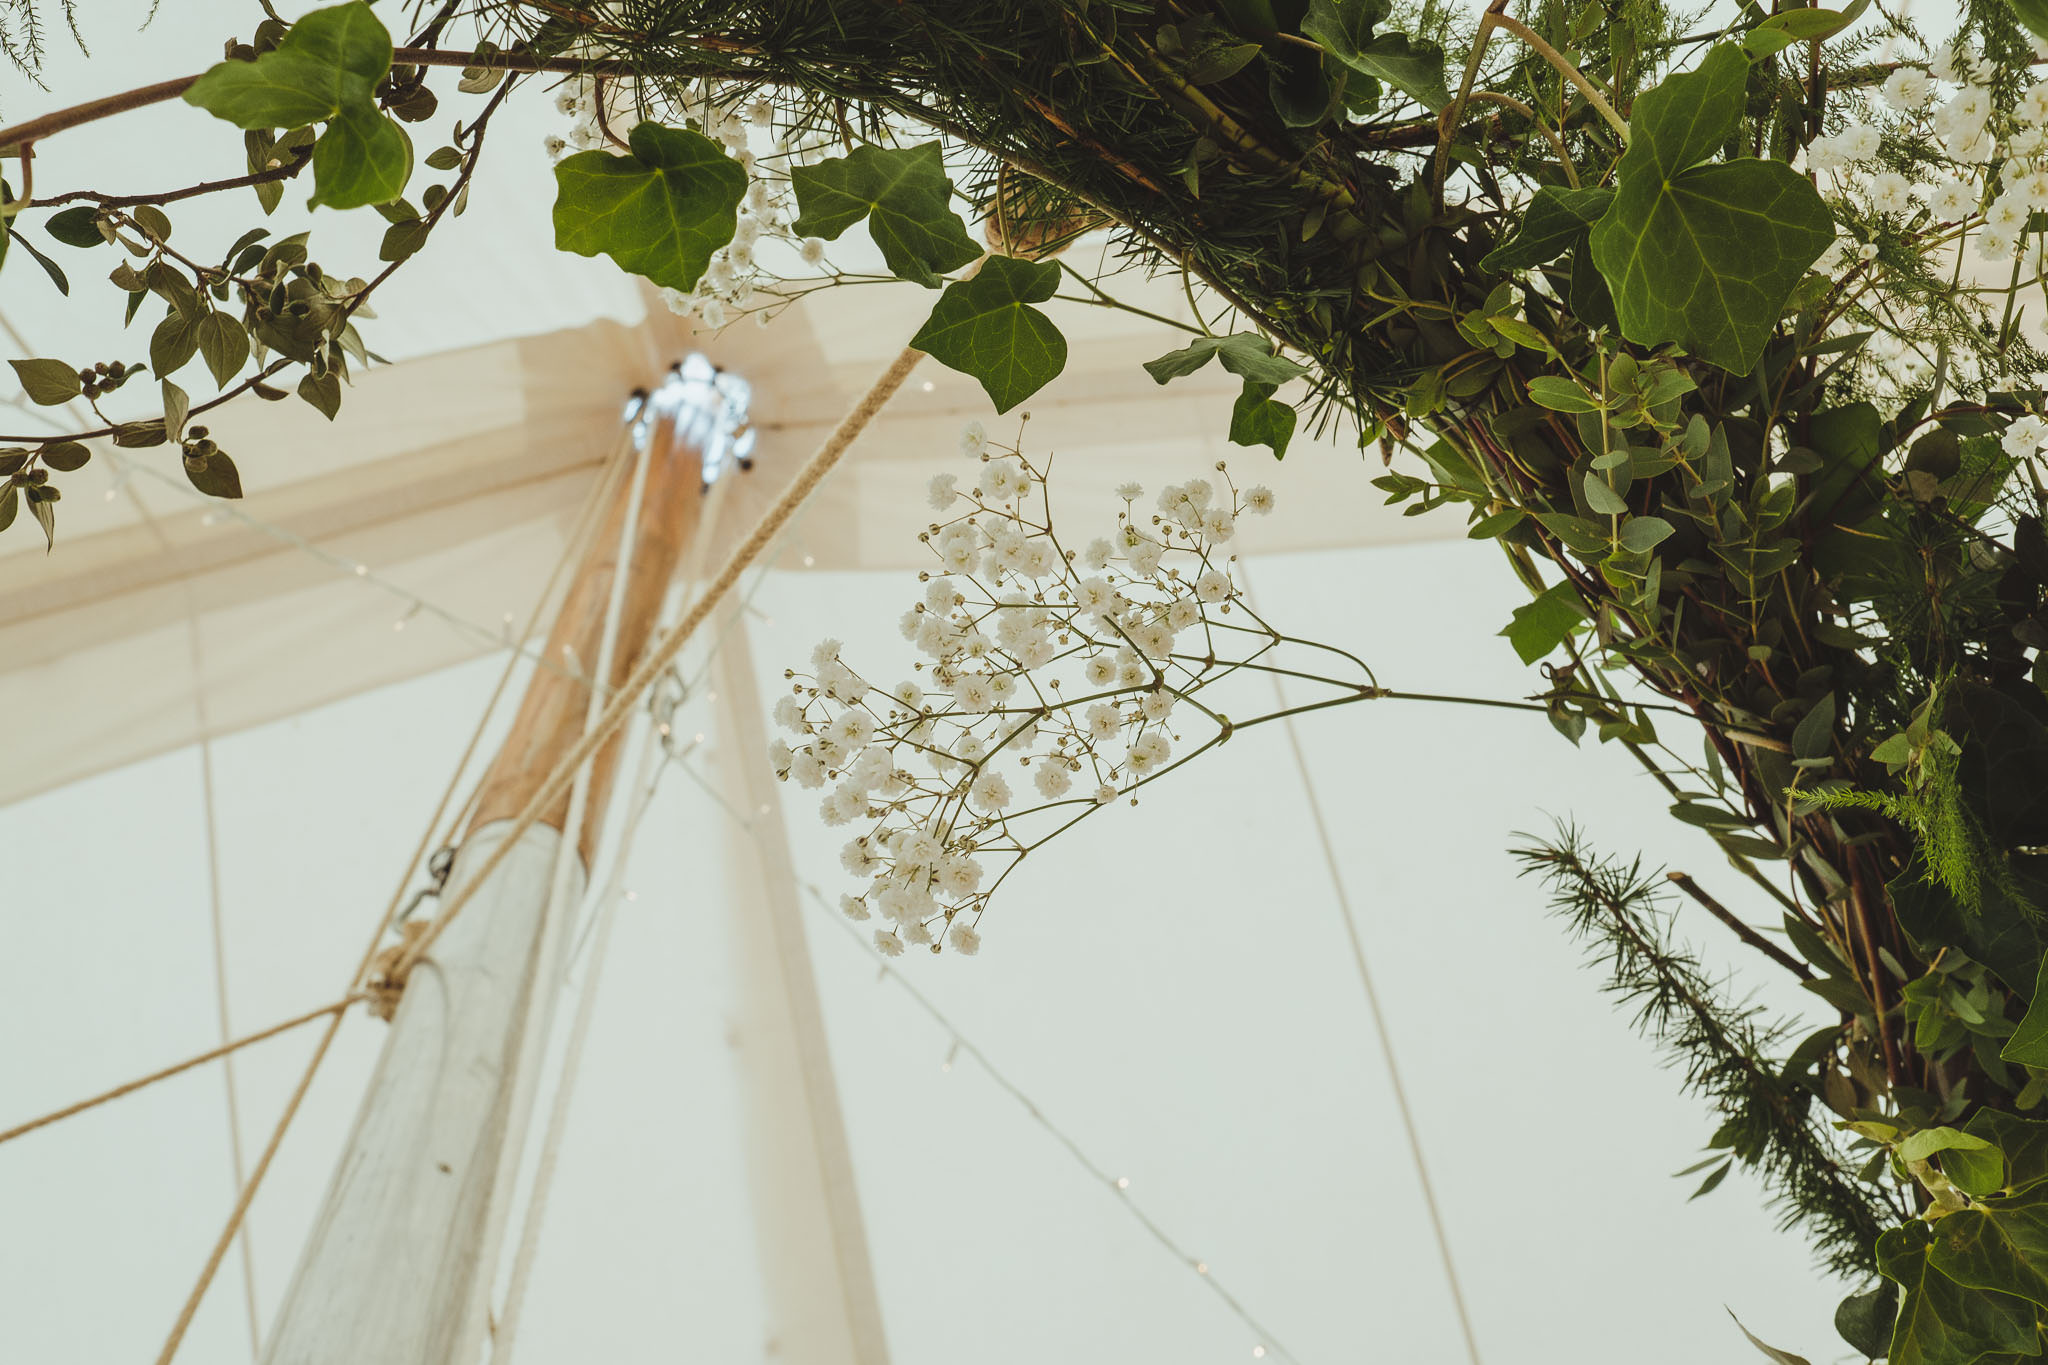 Close up of decorative foliage inside the wedding marquee